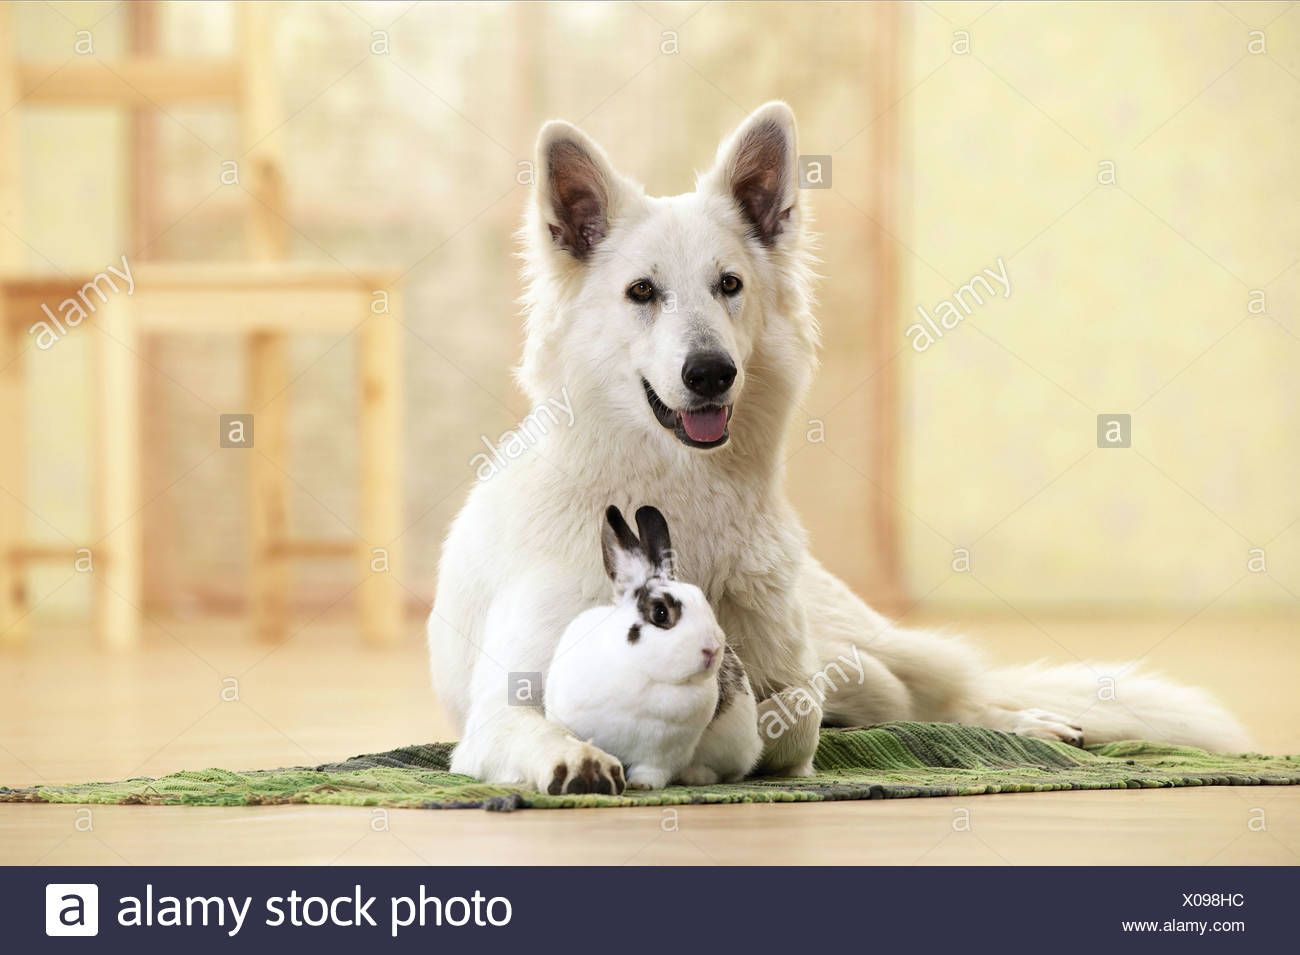 Animal-friendship : Berger Blanc Suisses with rabbit - Stock Image